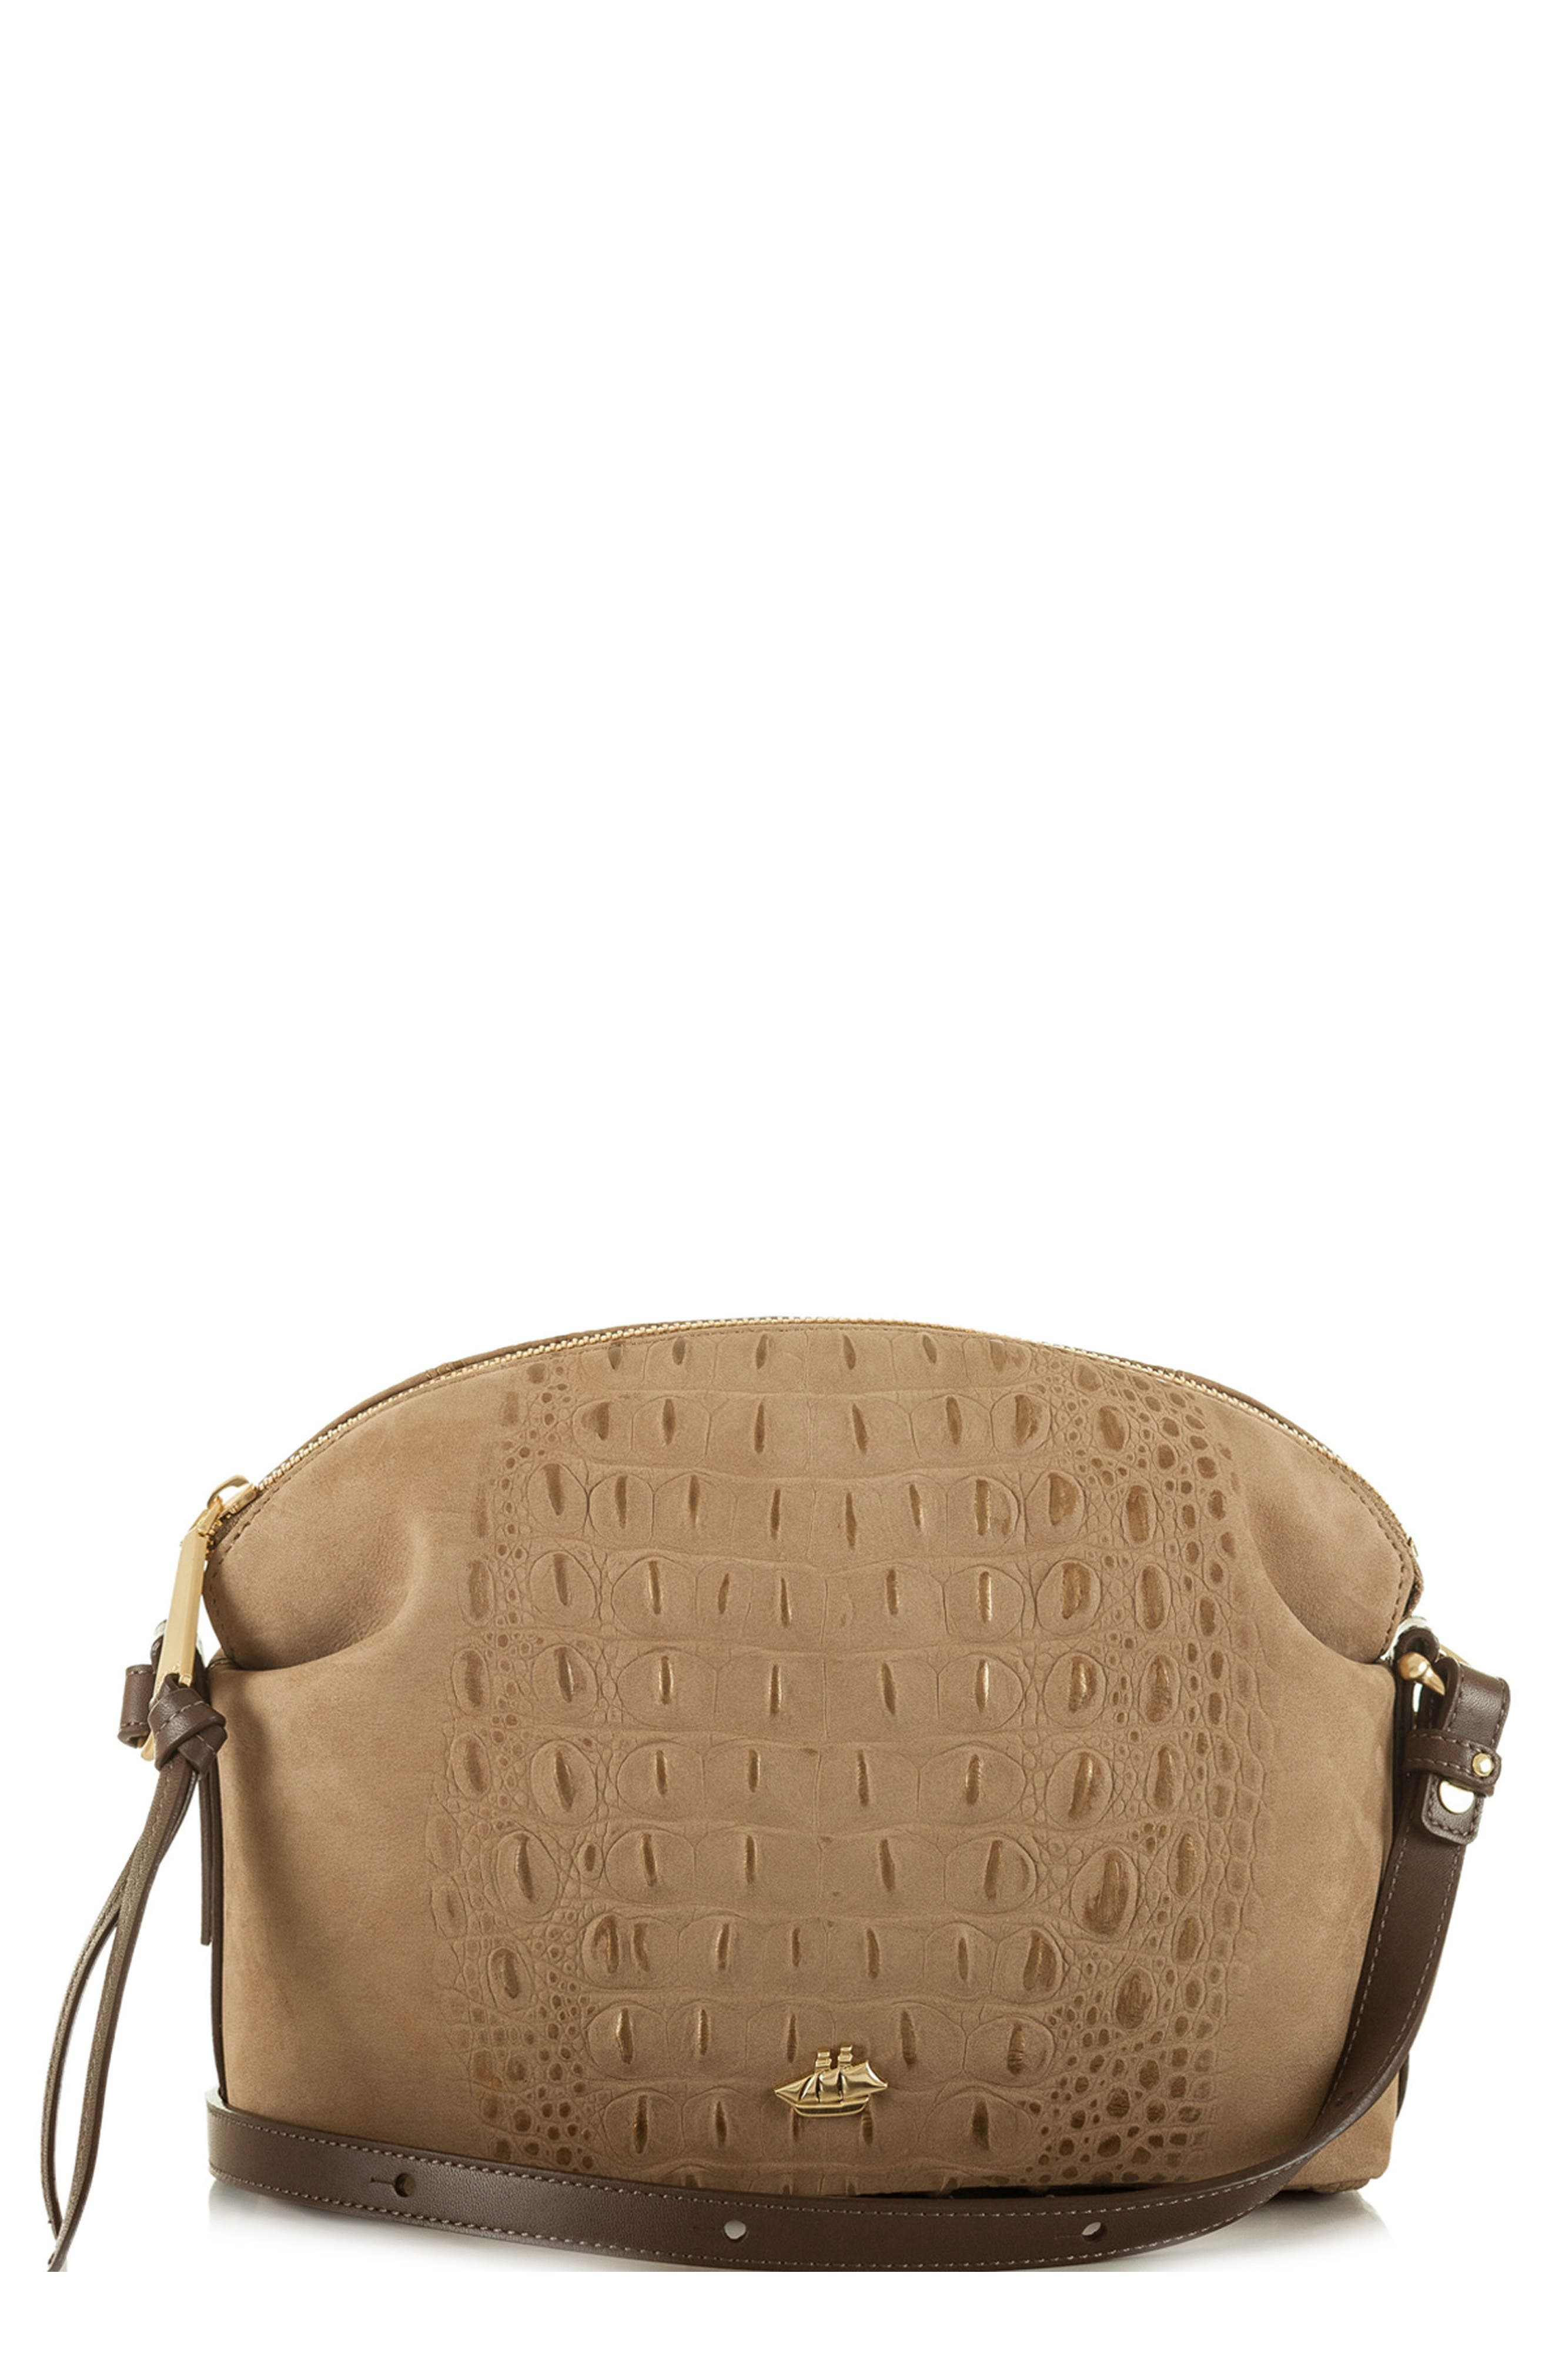 Southcast Haley Metallic Croc Embossed Leather Crossbody Bag,                             Main thumbnail 1, color,